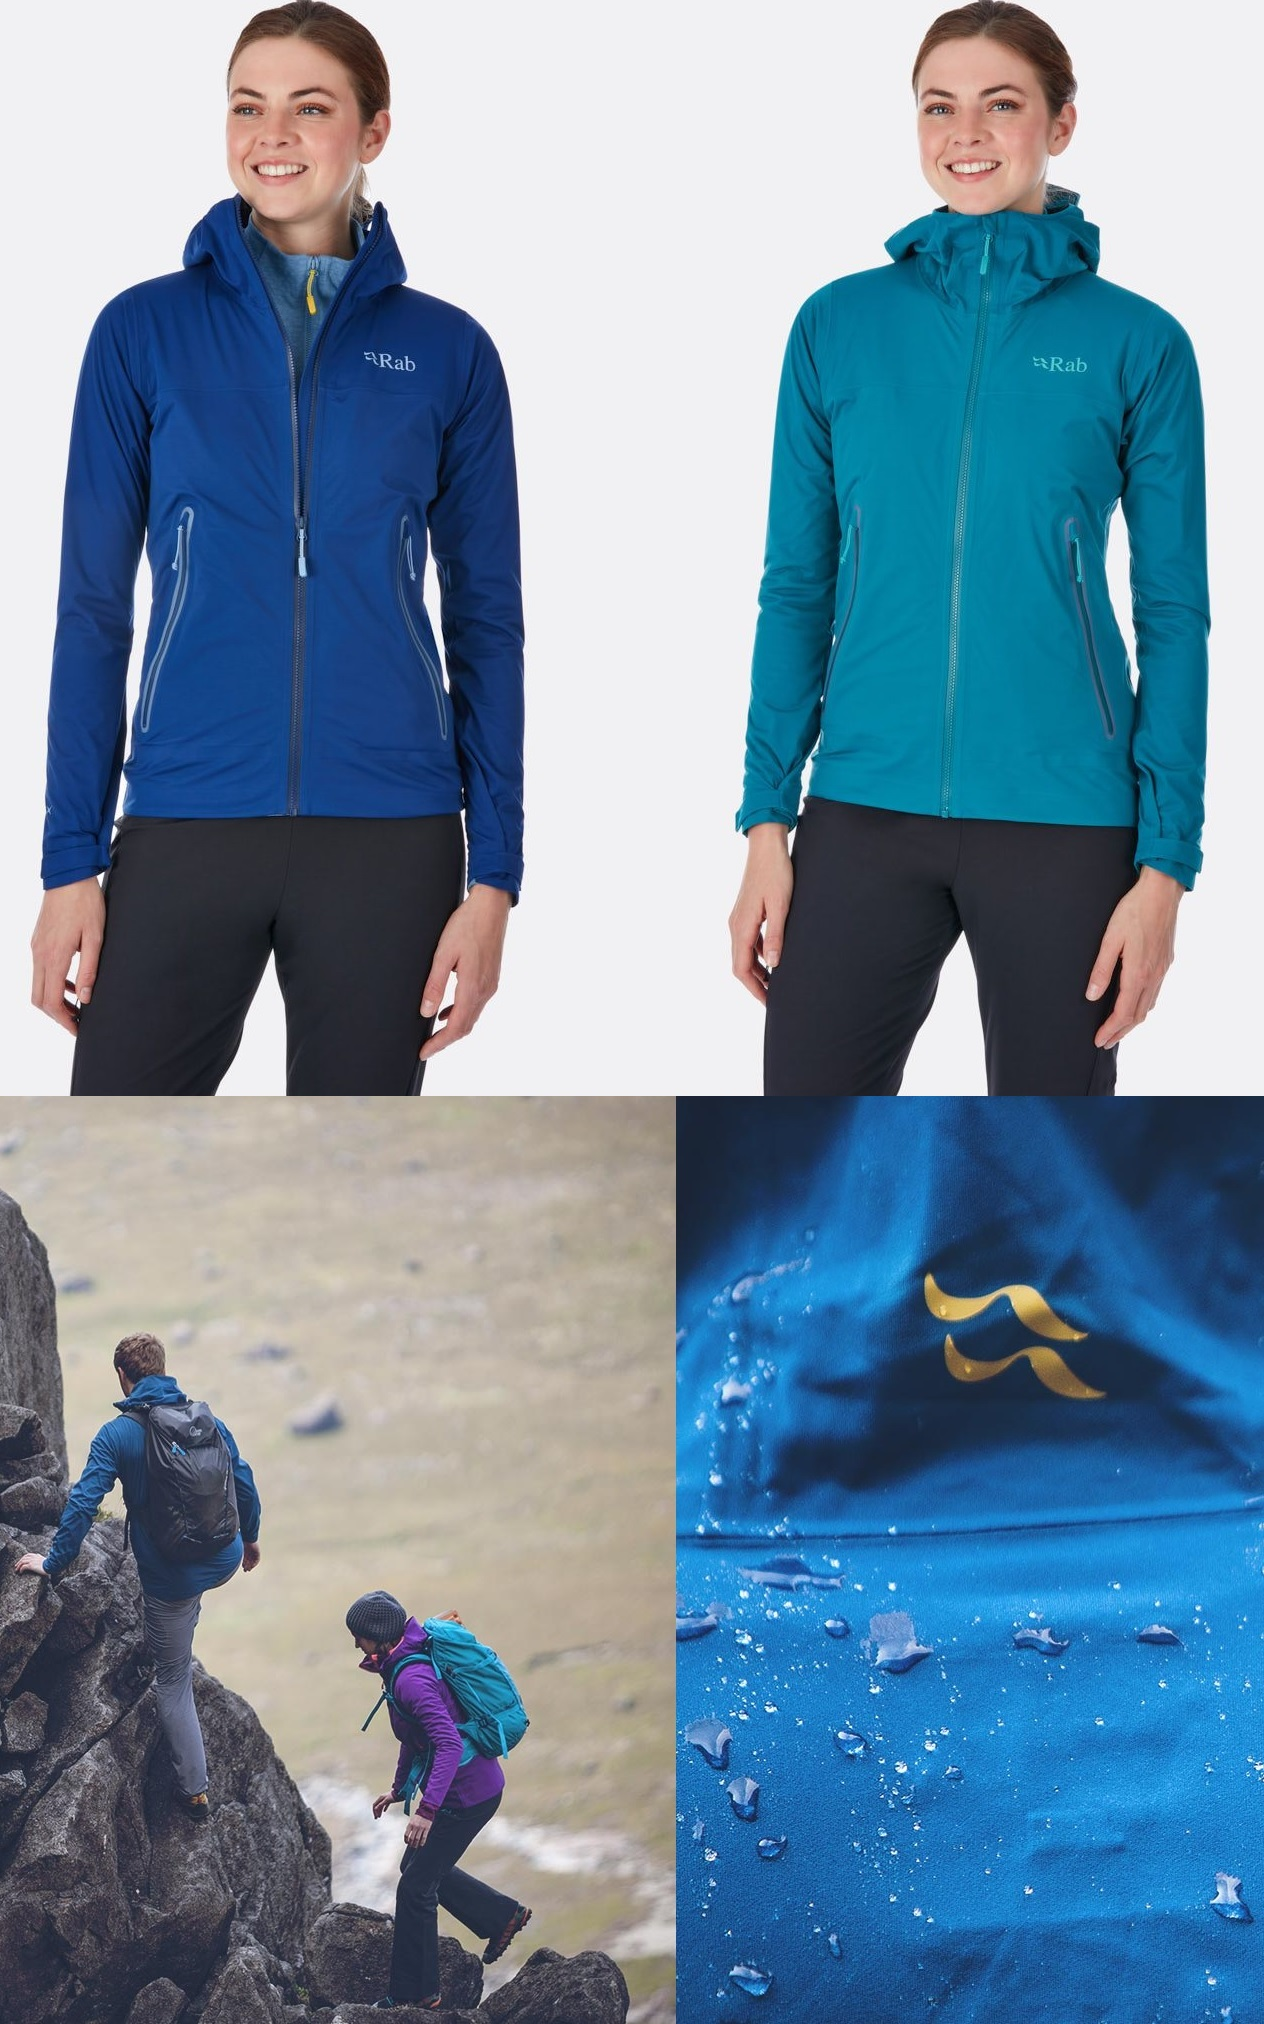 RAB Kinetic Plus Jacket Women's